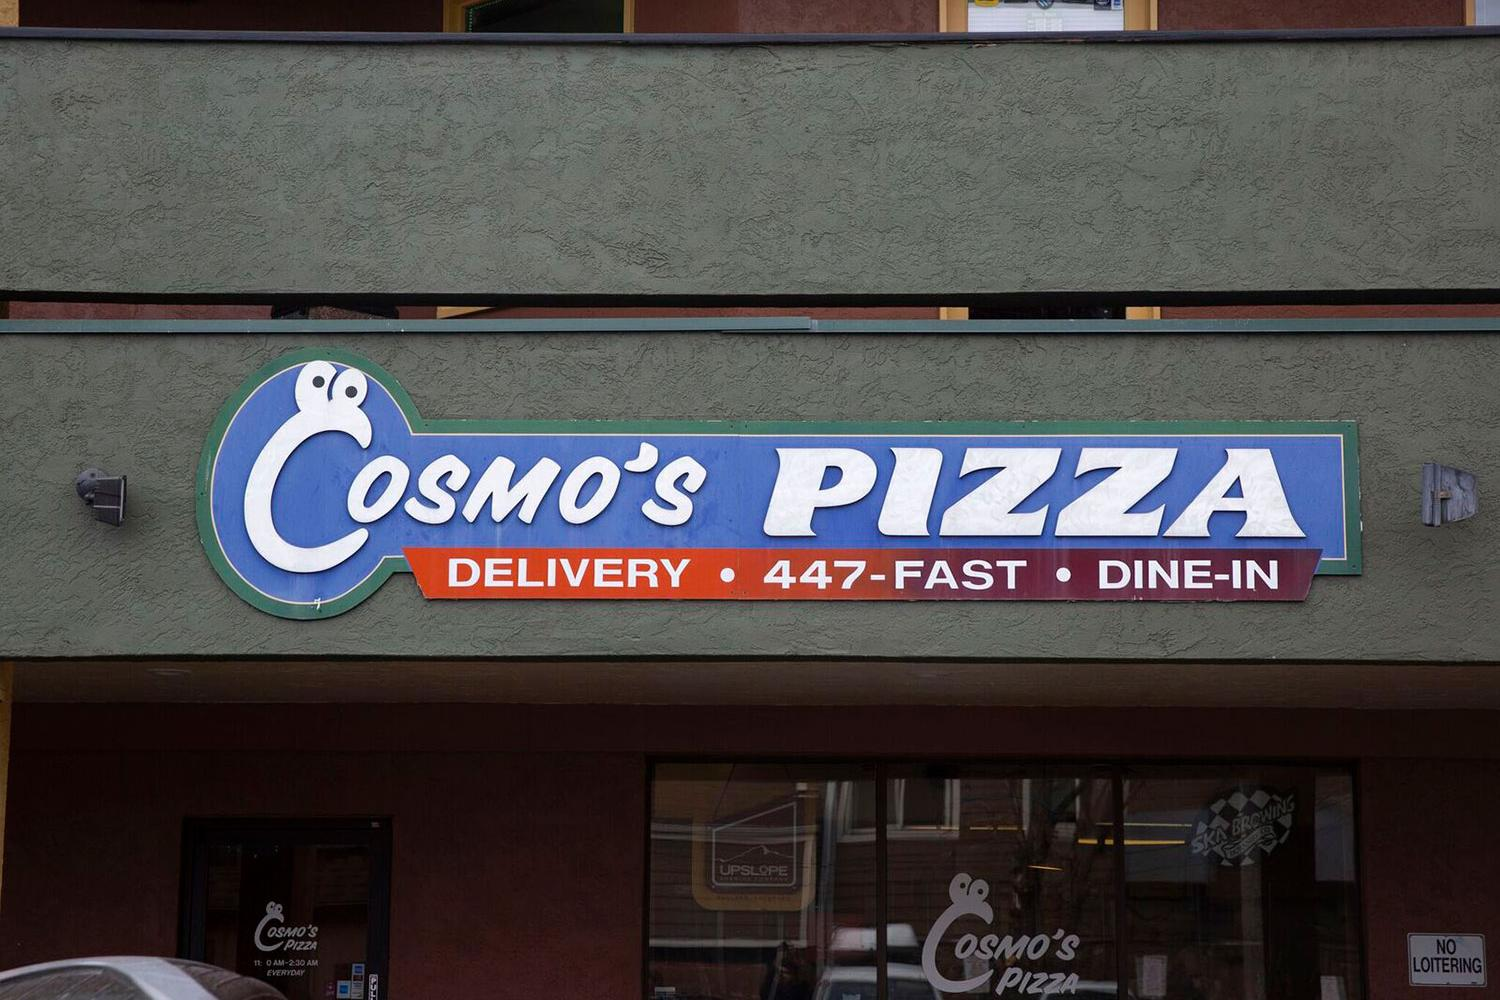 Cosmo's Pizza sign